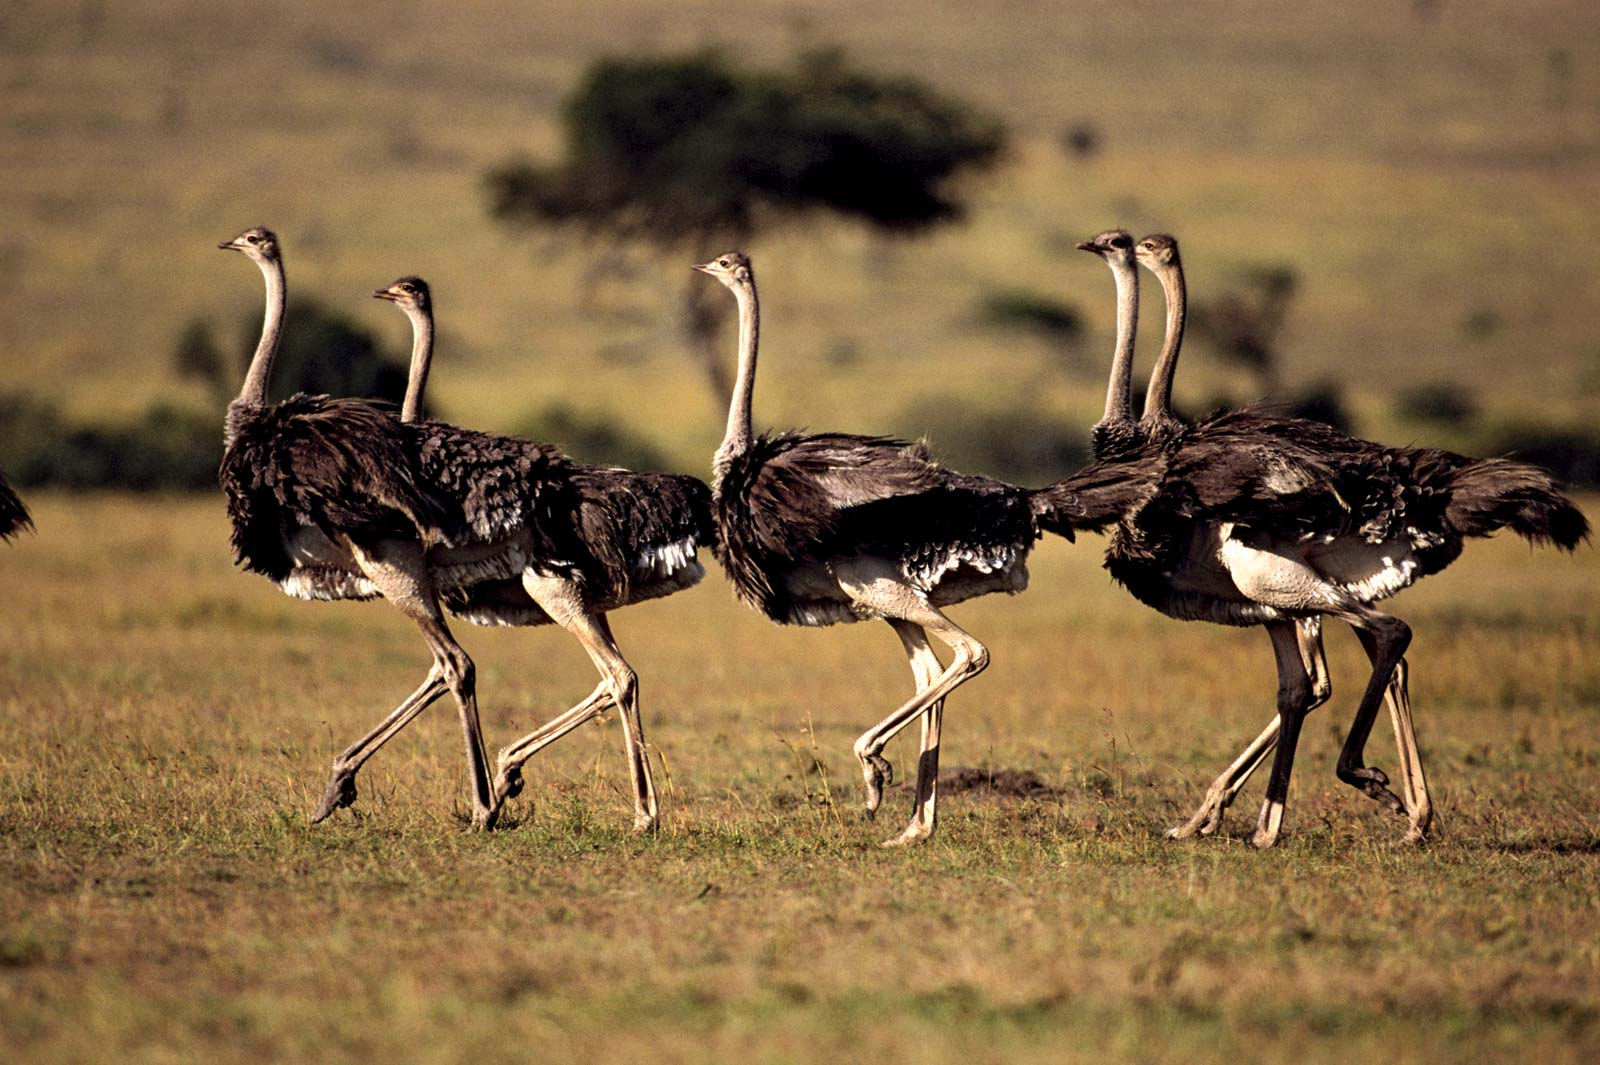 Ostriches birds found in serengeti national park . The Serengeti is a True Birder's Paradise: Bird Checklist to Look Out For. Serengeti Acacia Camps